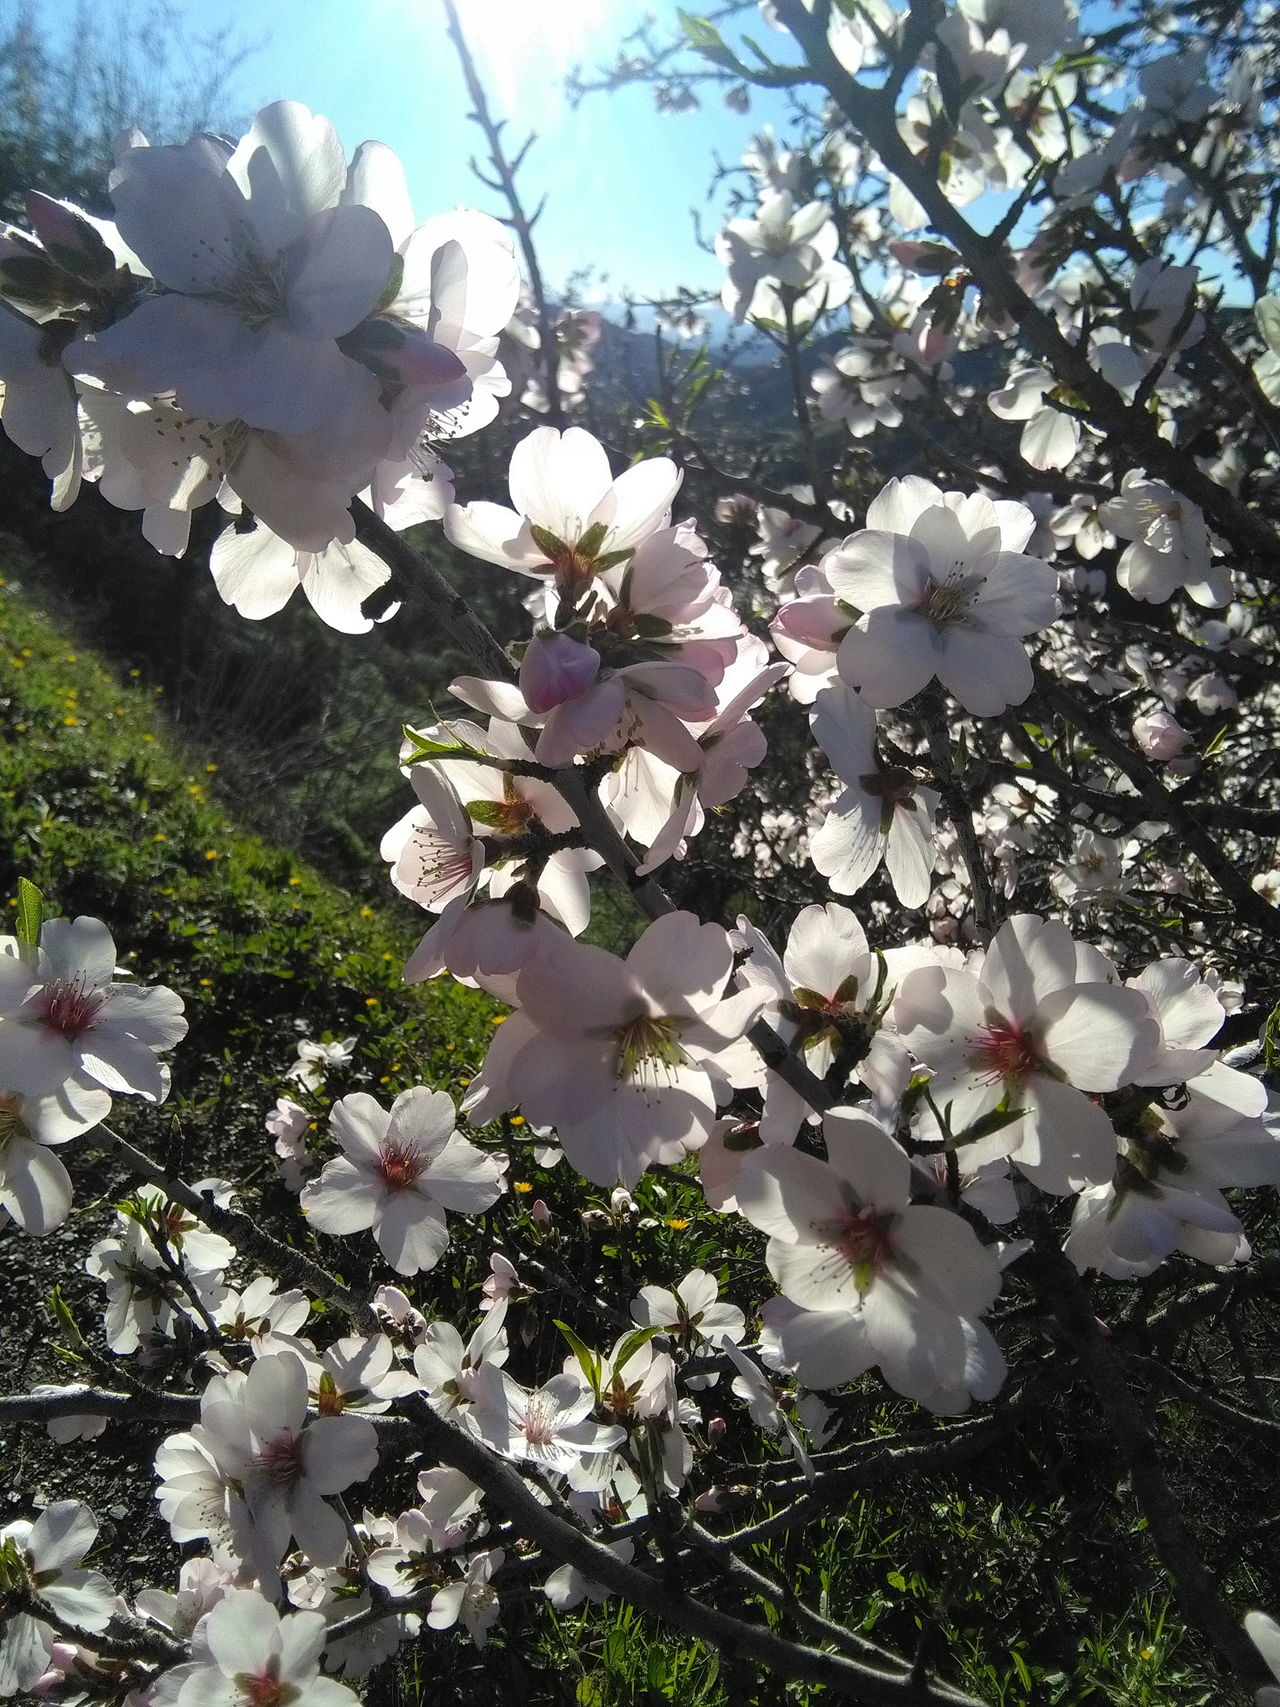 Almond blossom for friends in snowy places😘💕🙌🌸 Almond Blossom Nature It's A Wonderful Life What A Wonderful World Life Is Magical